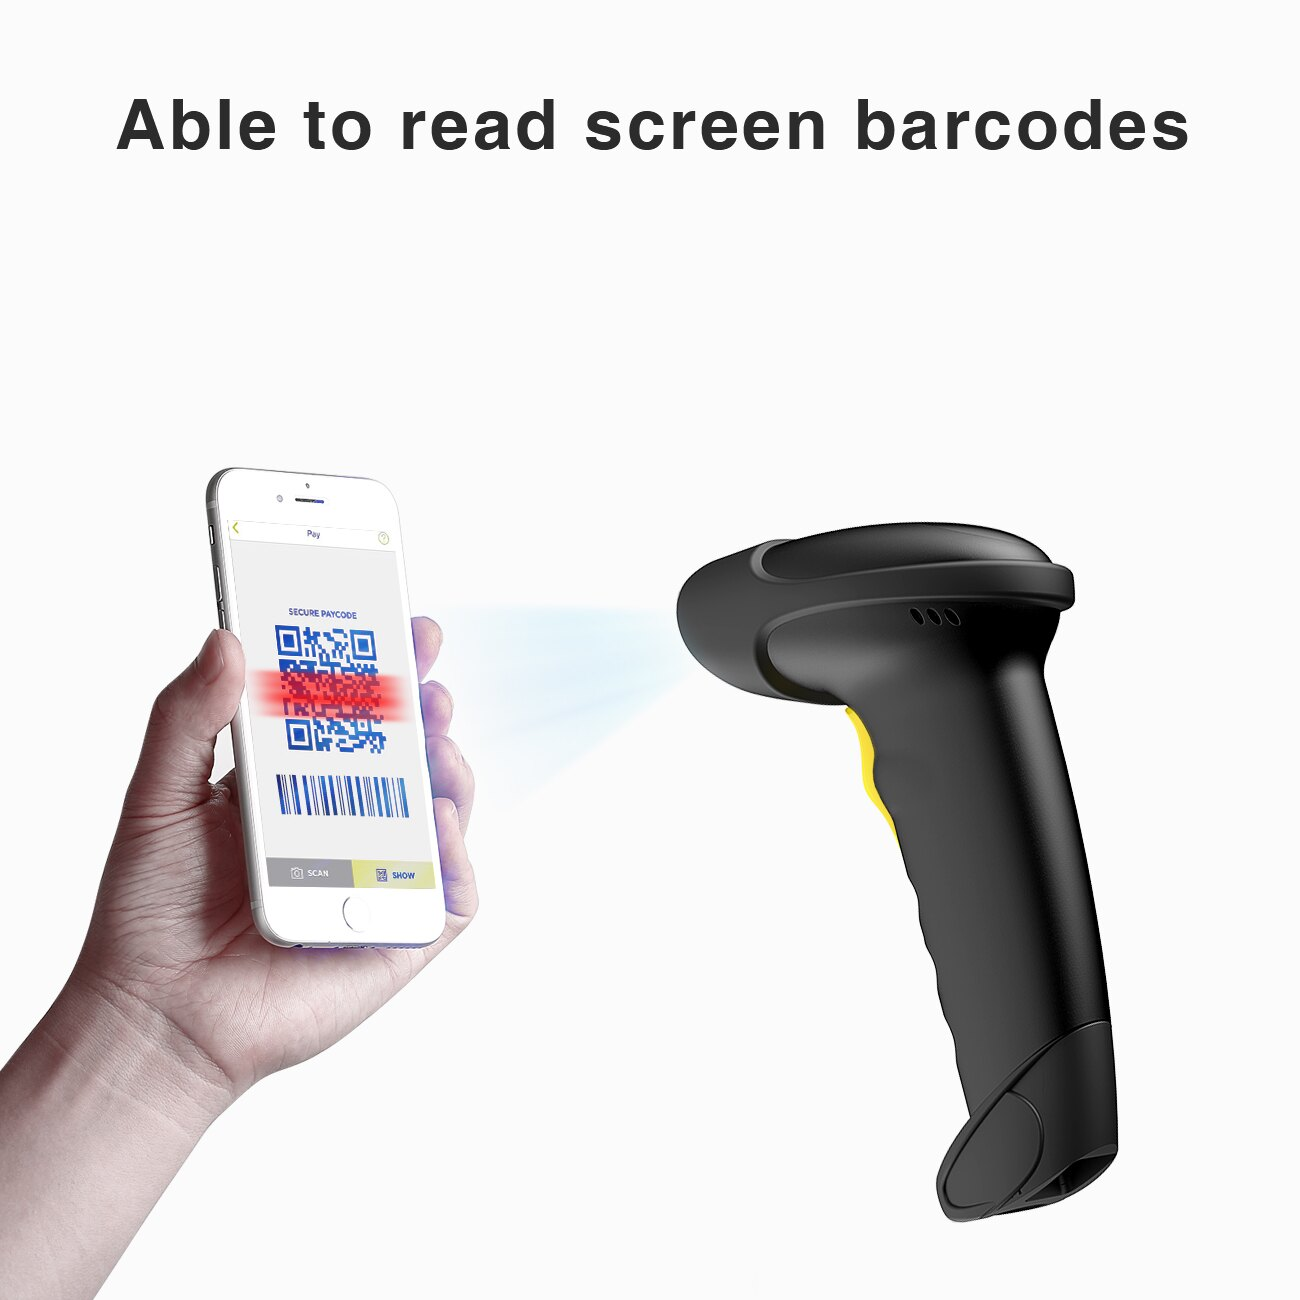 Inateck 2D Wireless Bluetooth Barcode Scanner, Read Barcodes on Displays,  Black